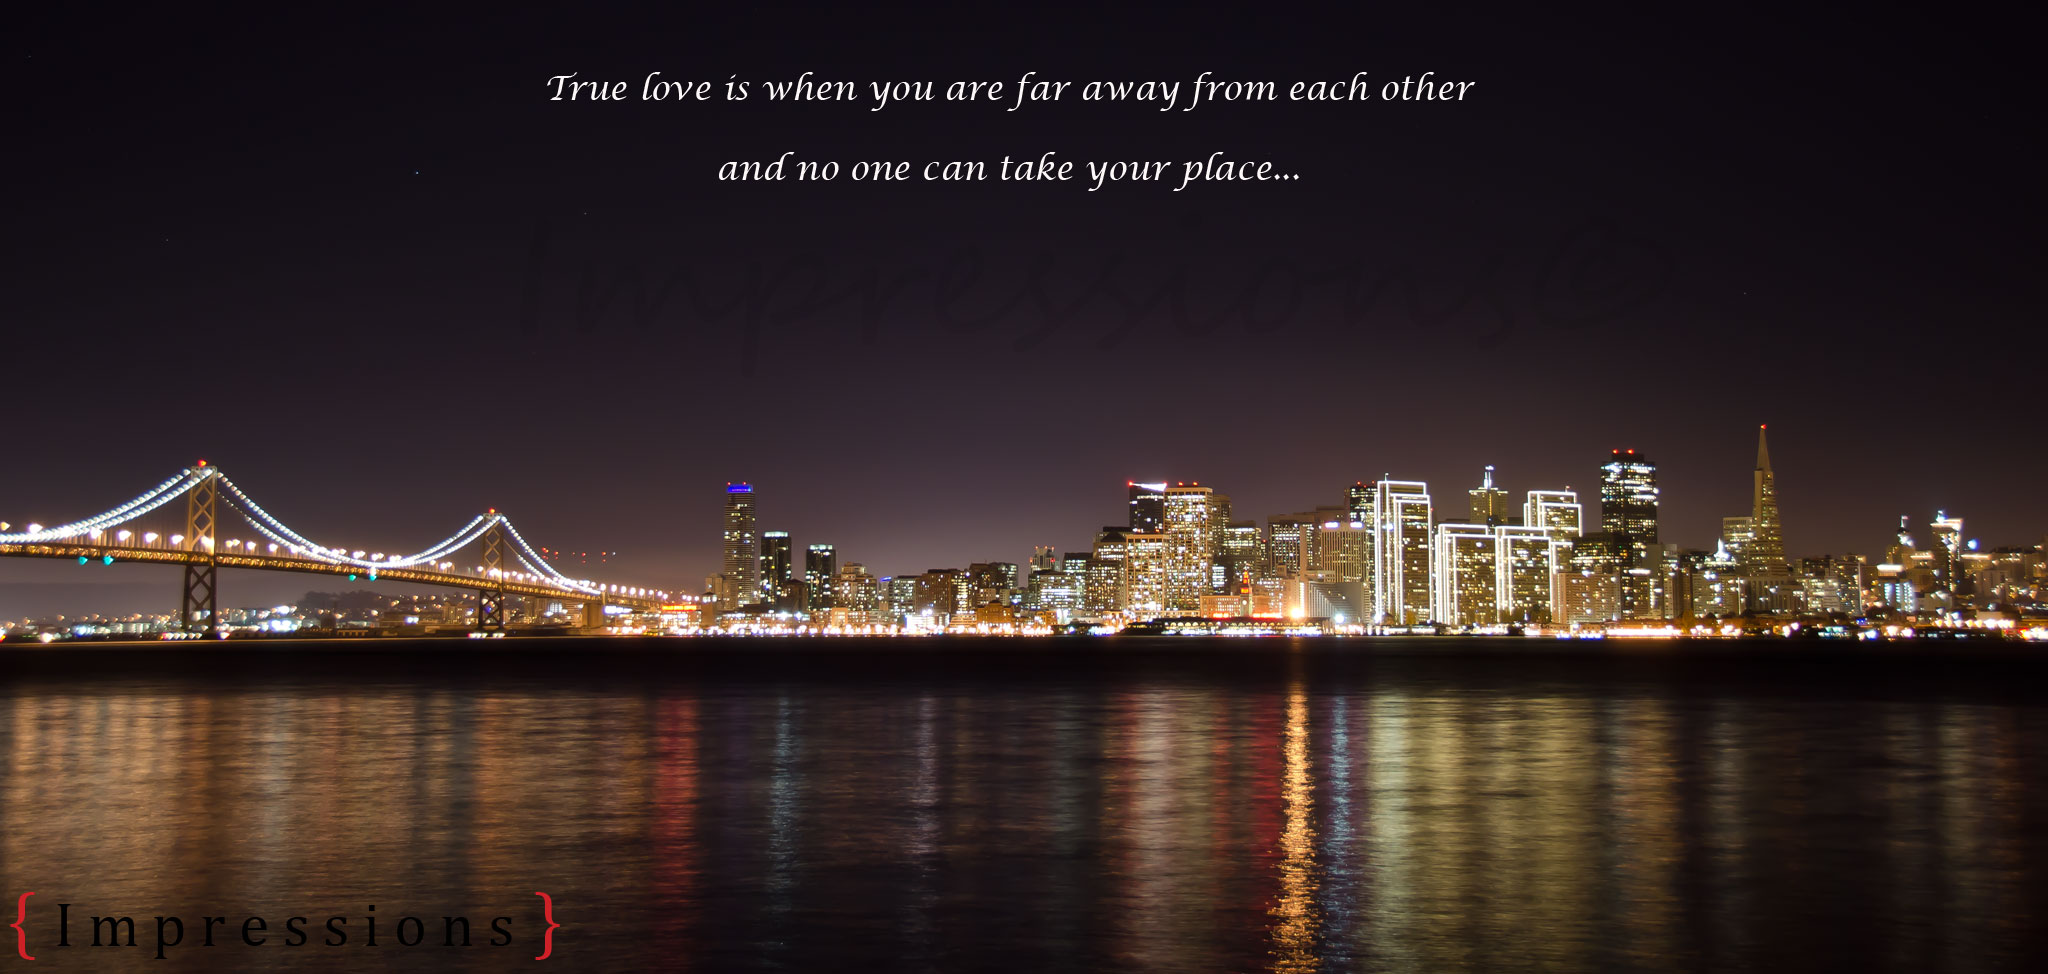 Far Away Love Quotes True Love Is When You Are Far Away From Each Other » Love Quotes